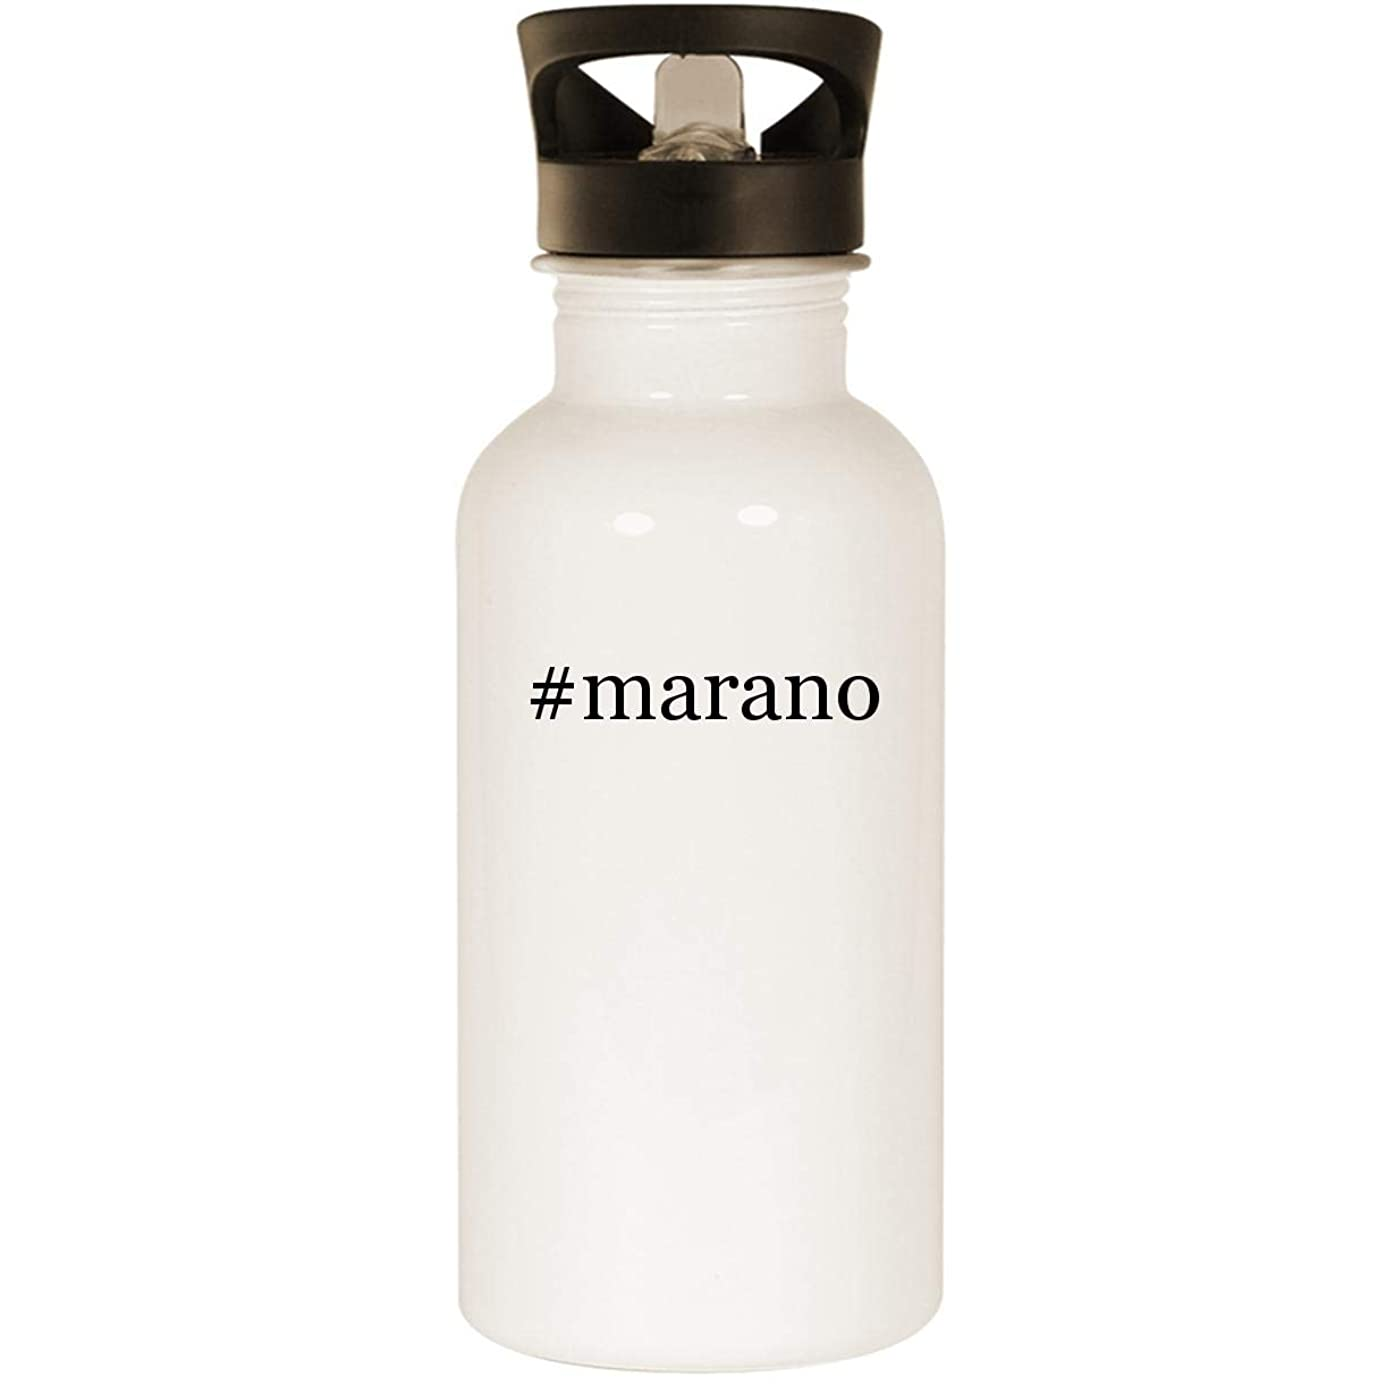 #marano - Stainless Steel Hashtag 20oz Road Ready Water Bottle, White